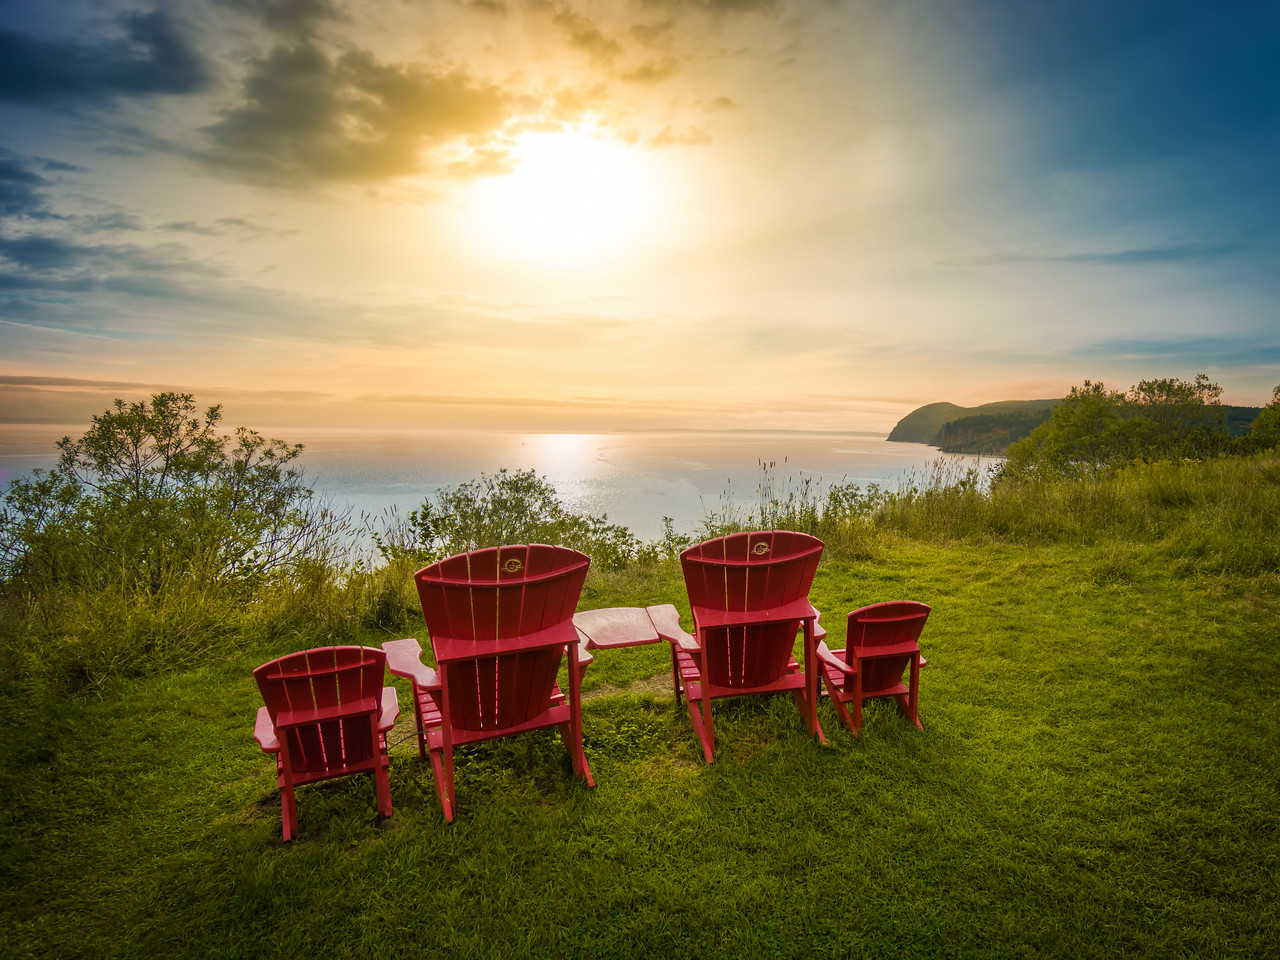 Red Chairs Over Bay of Fundy (New Brunswick)